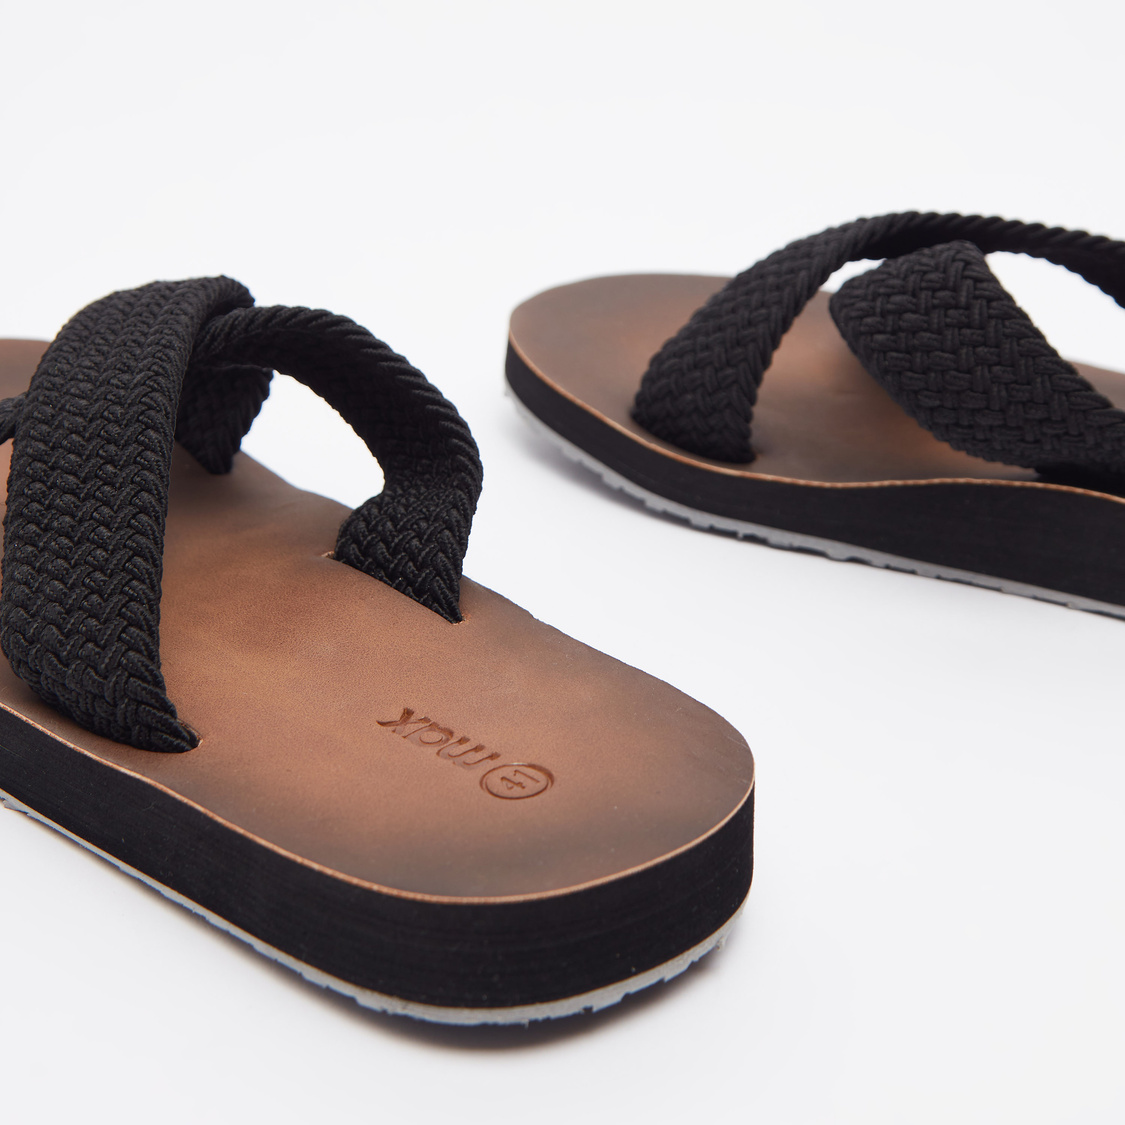 Textured Sandals with Cross Straps